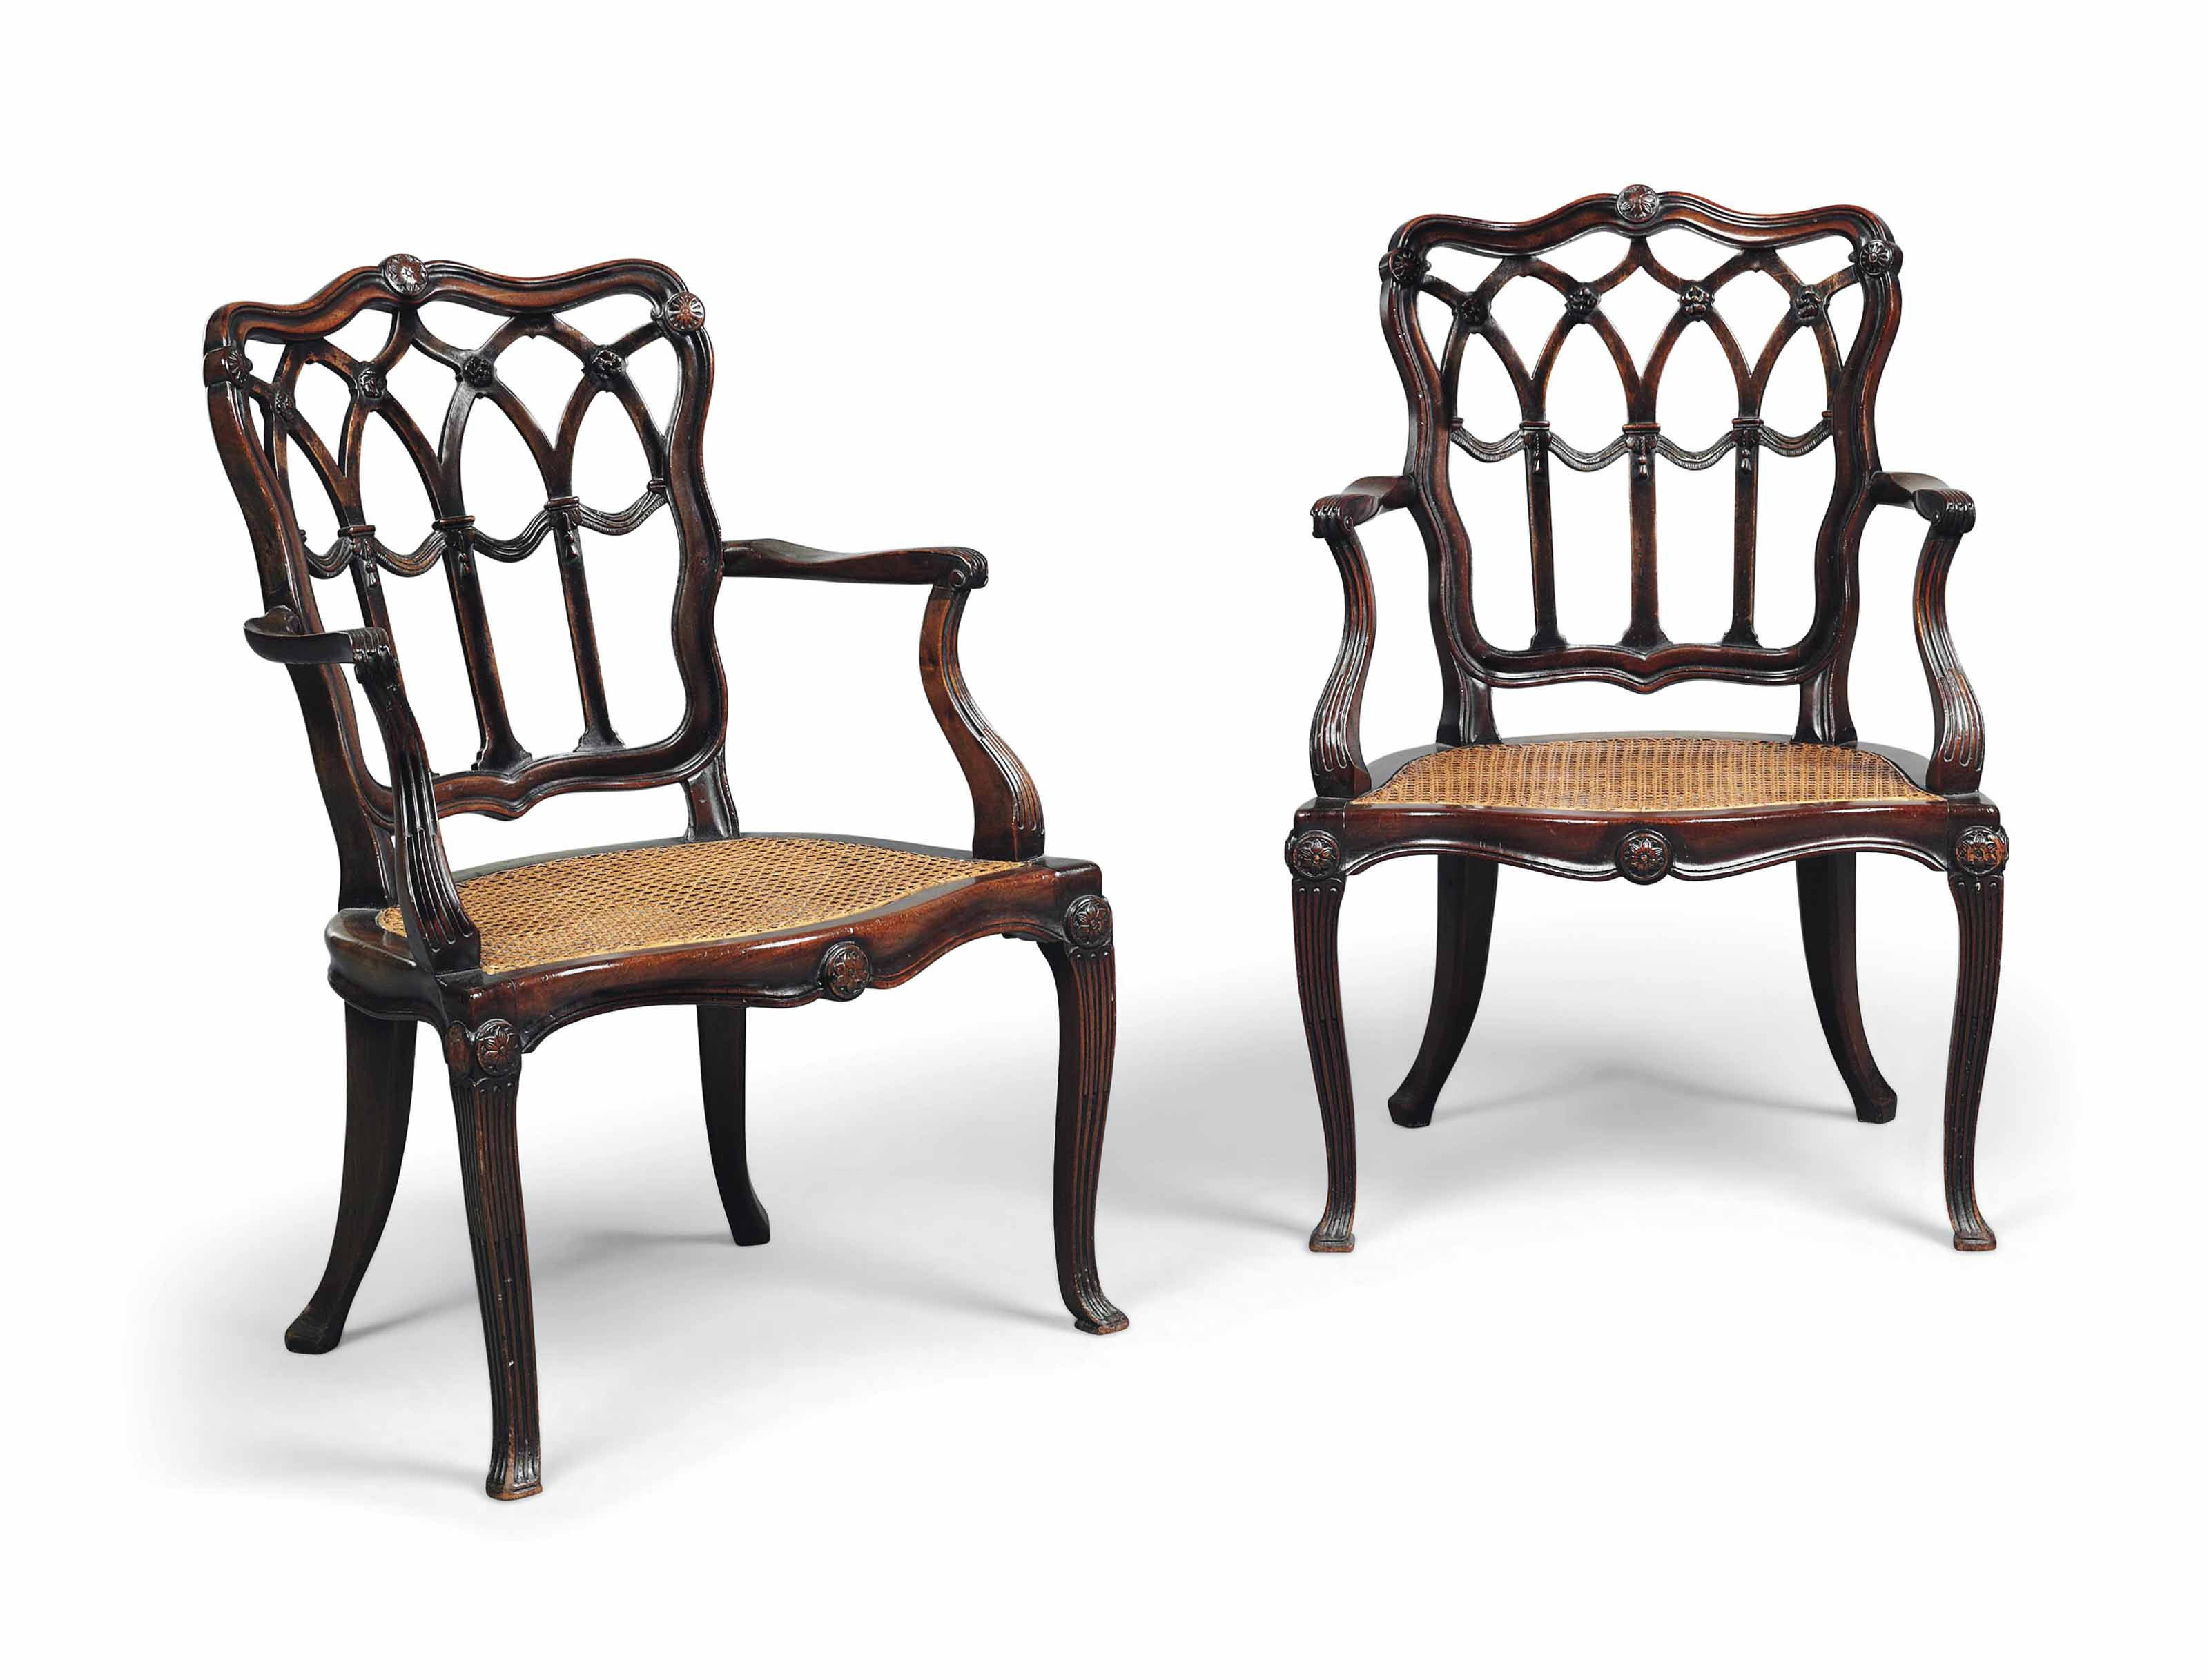 A PAIR OF GEORGE III-STYLE MAHOGANY ARMCHAIRS